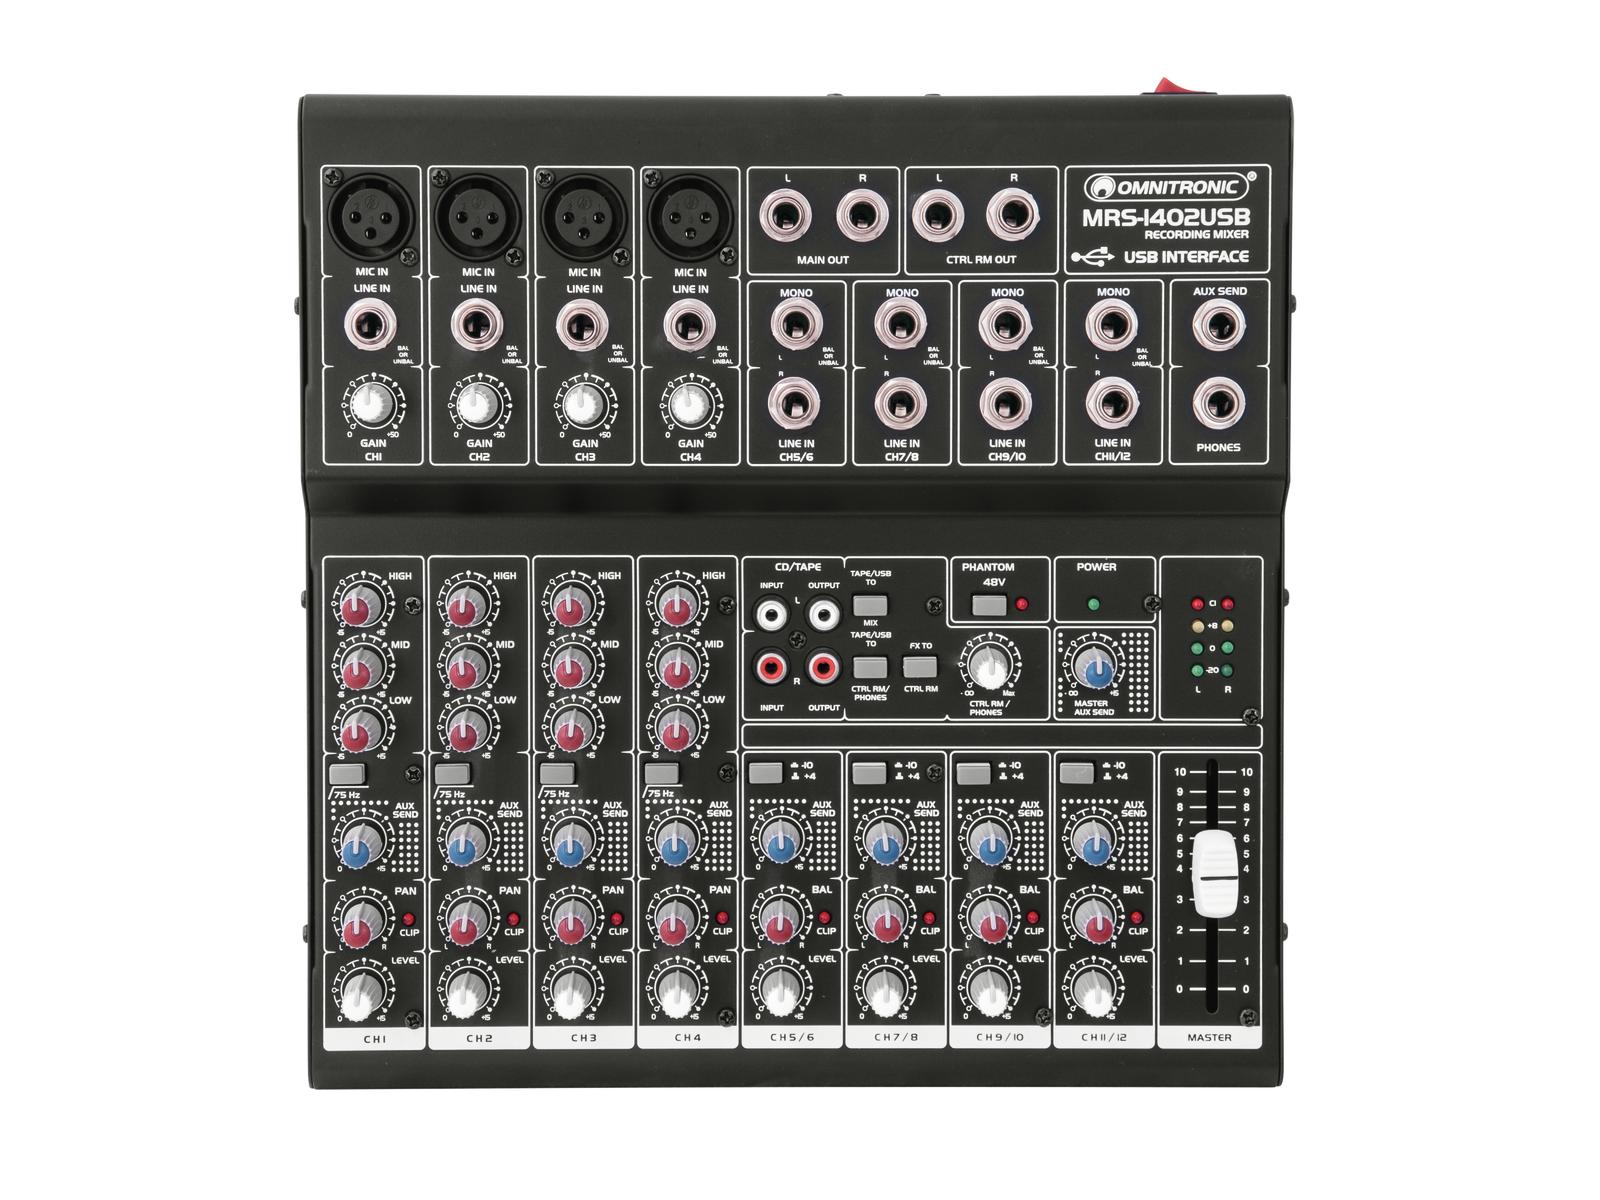 OMNITRONIC MRS-1402USB Recording mixer